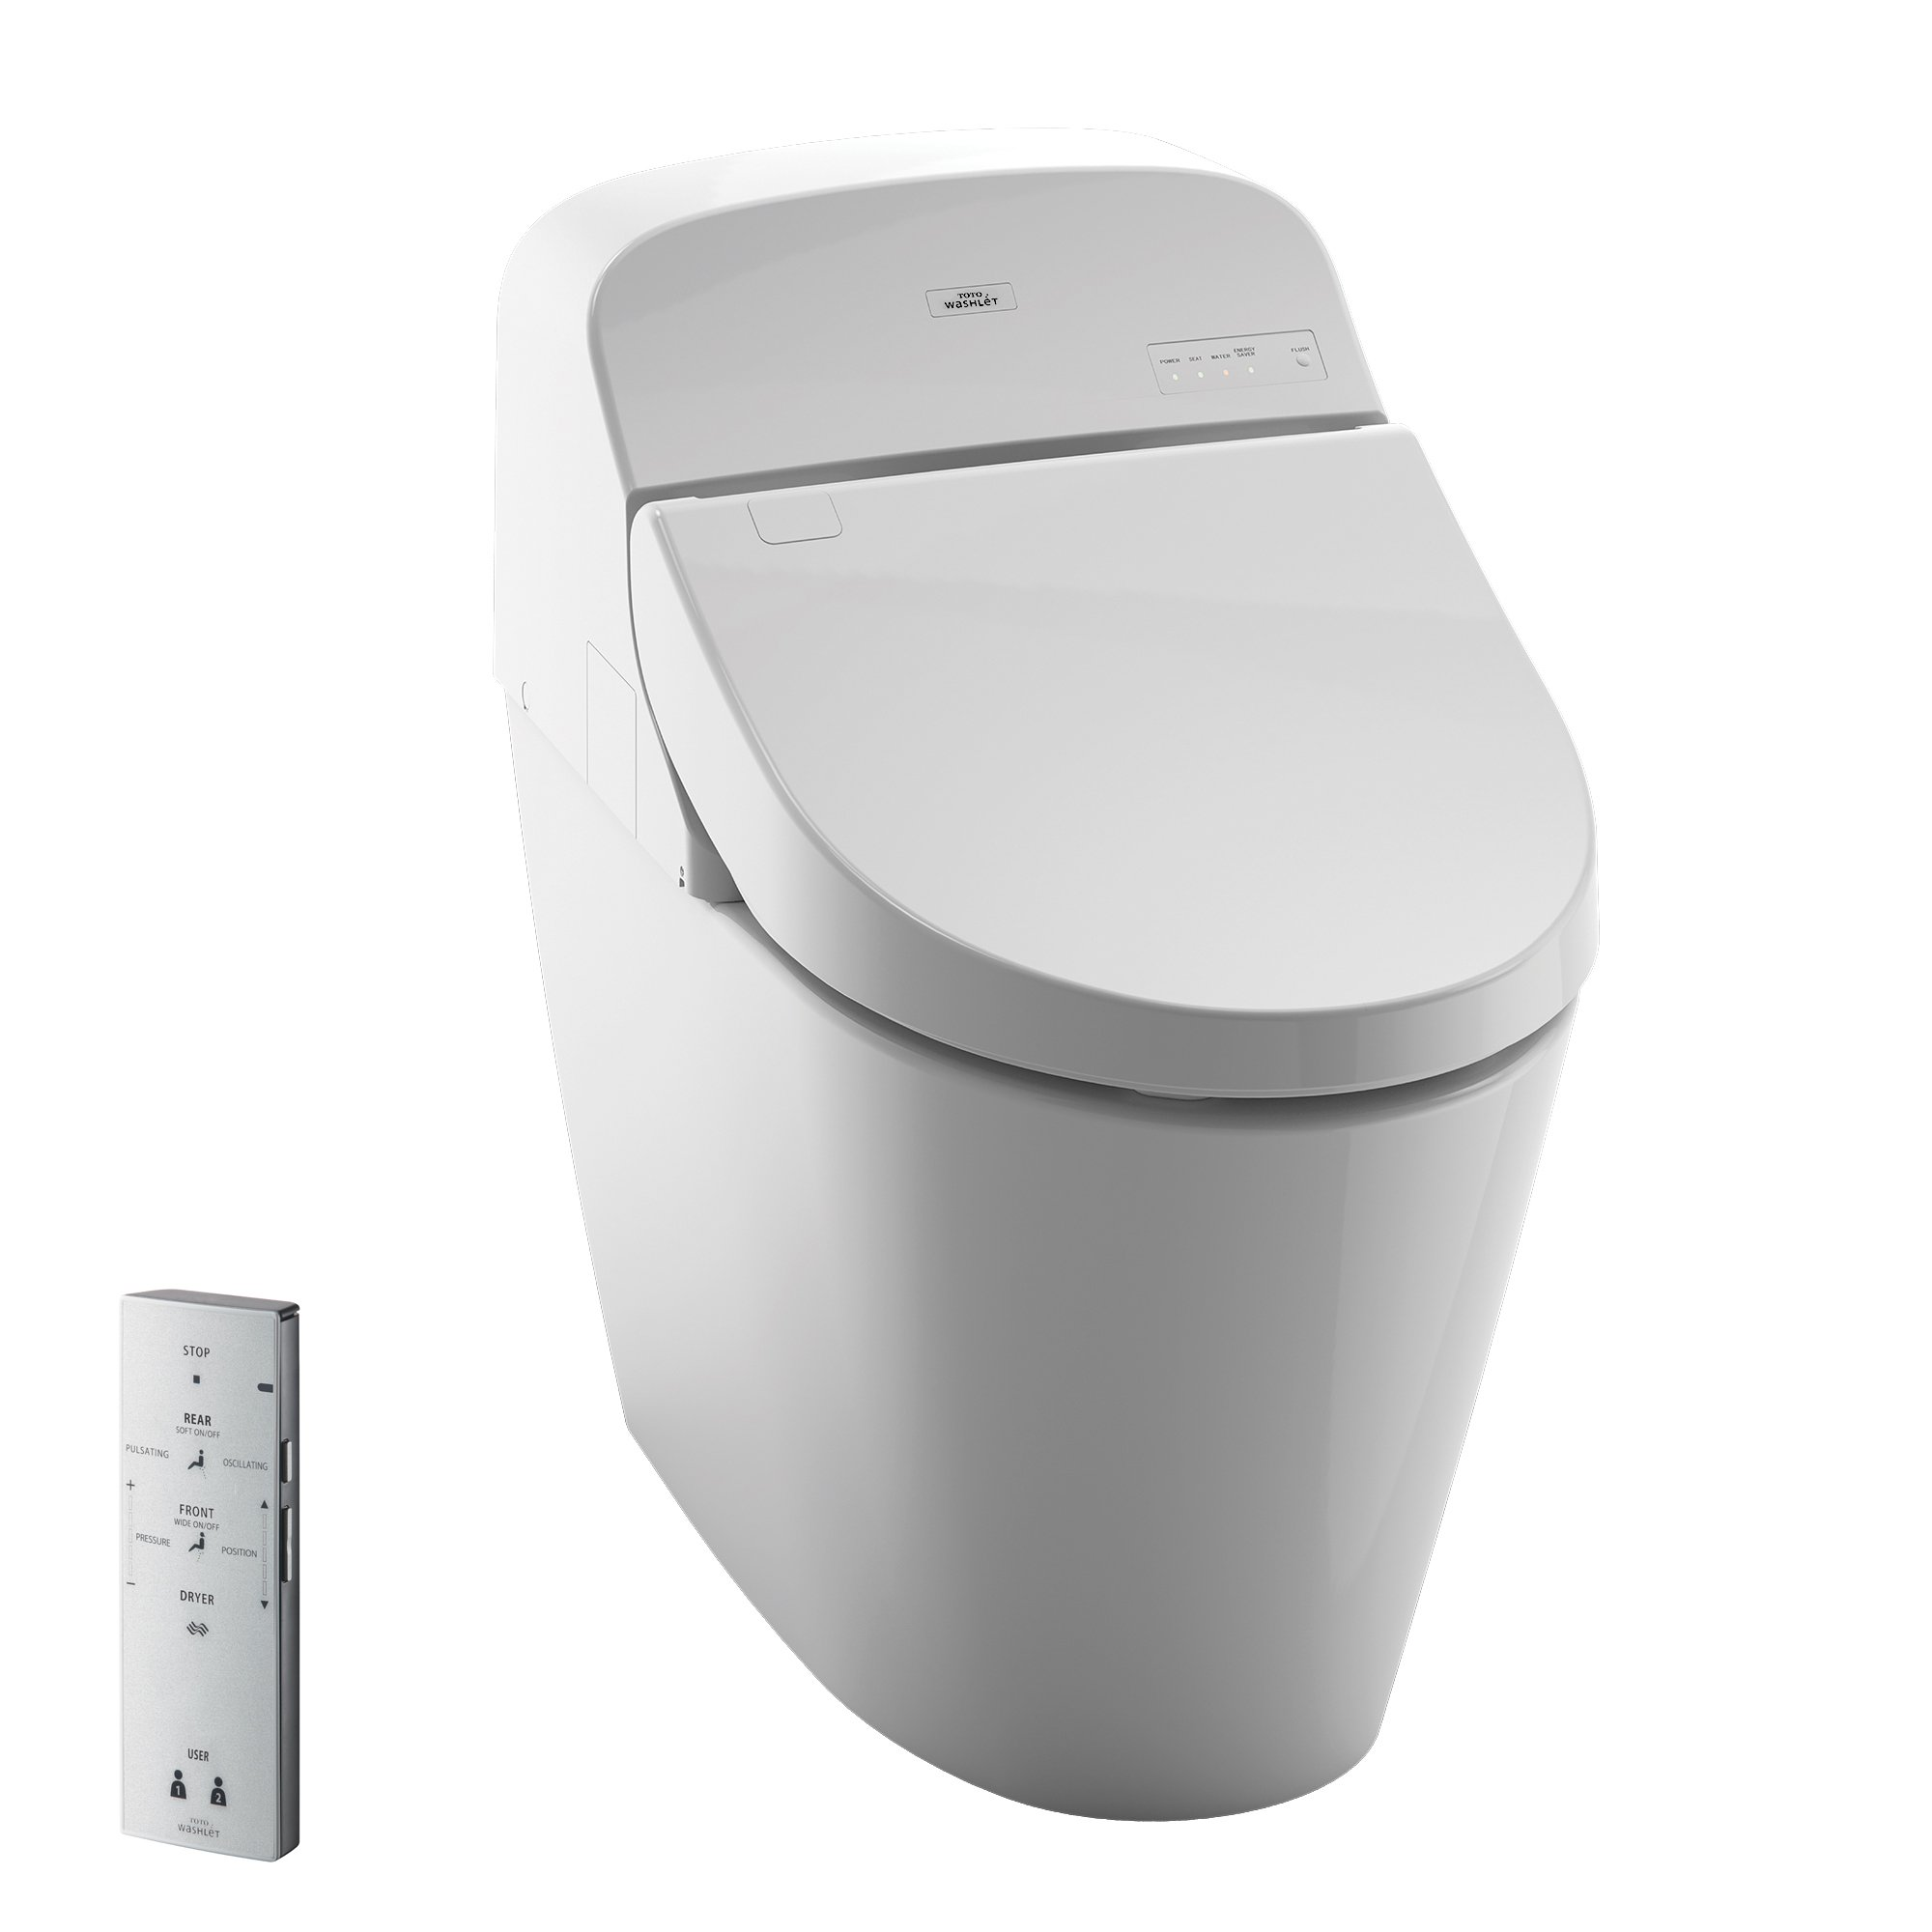 Toto MS920CEMFG#01 1.28-GPF/0.9-GPF Washlet with Integrated Toilet G400, Cotton White by TOTO